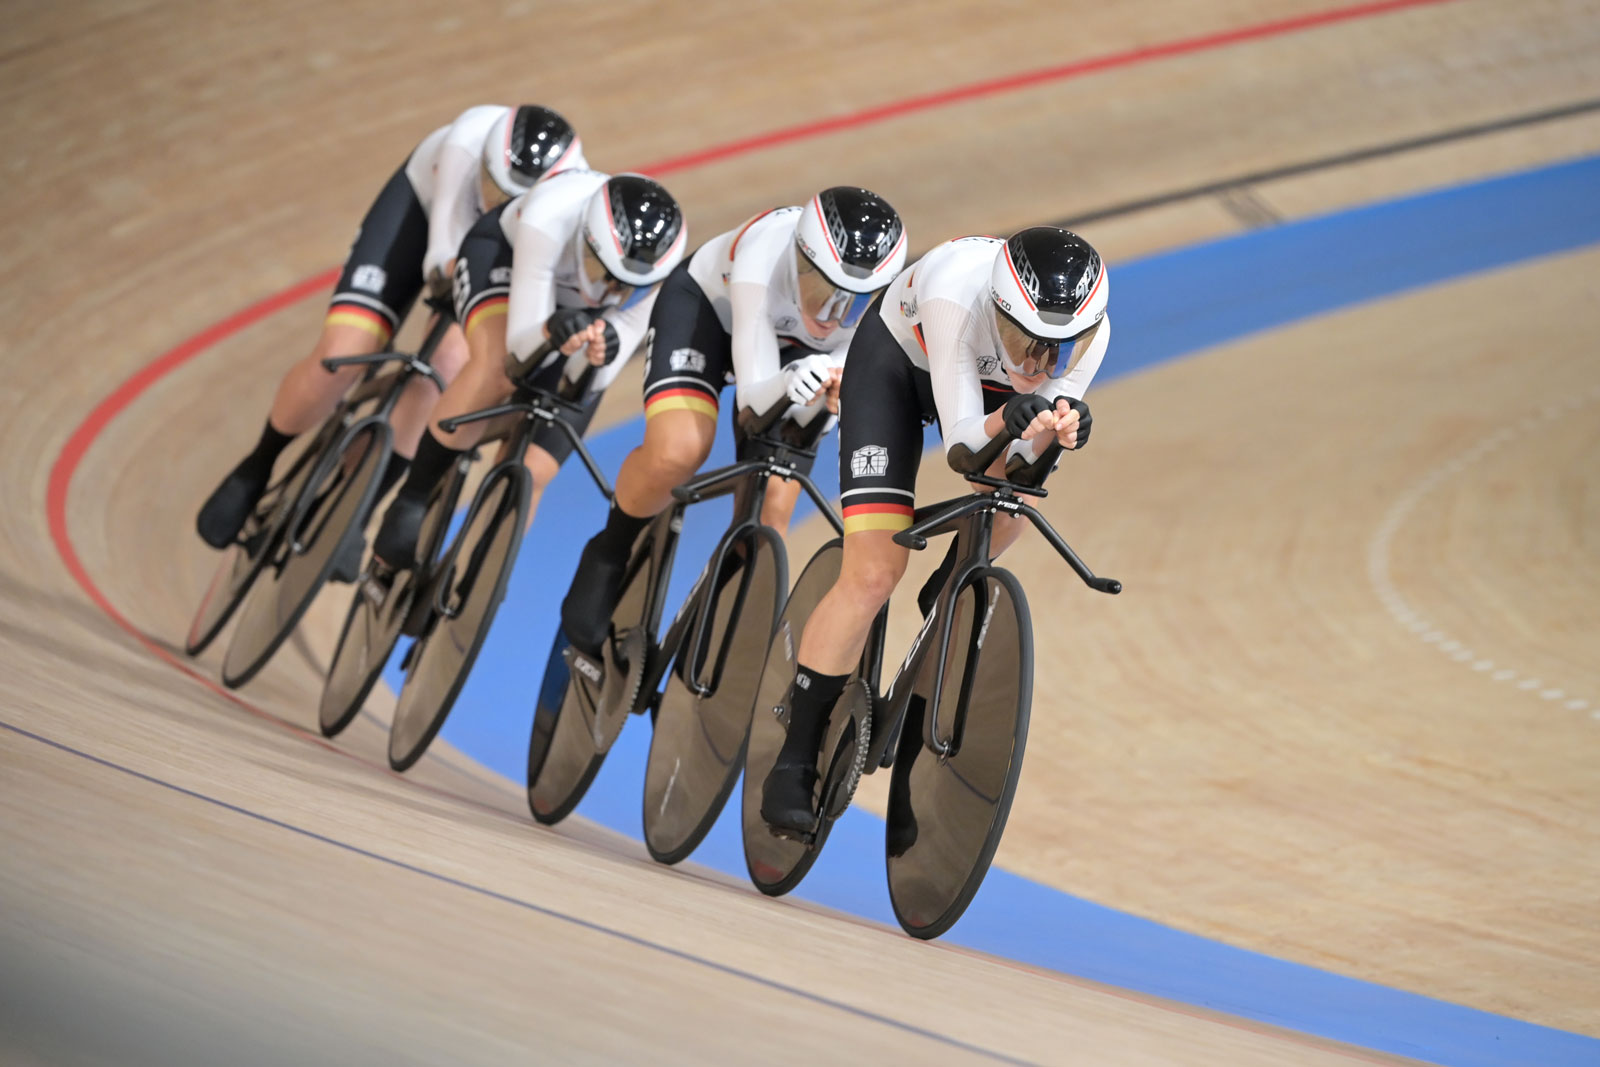 The German women's team set a world record in track cycling pursuit on August 2.